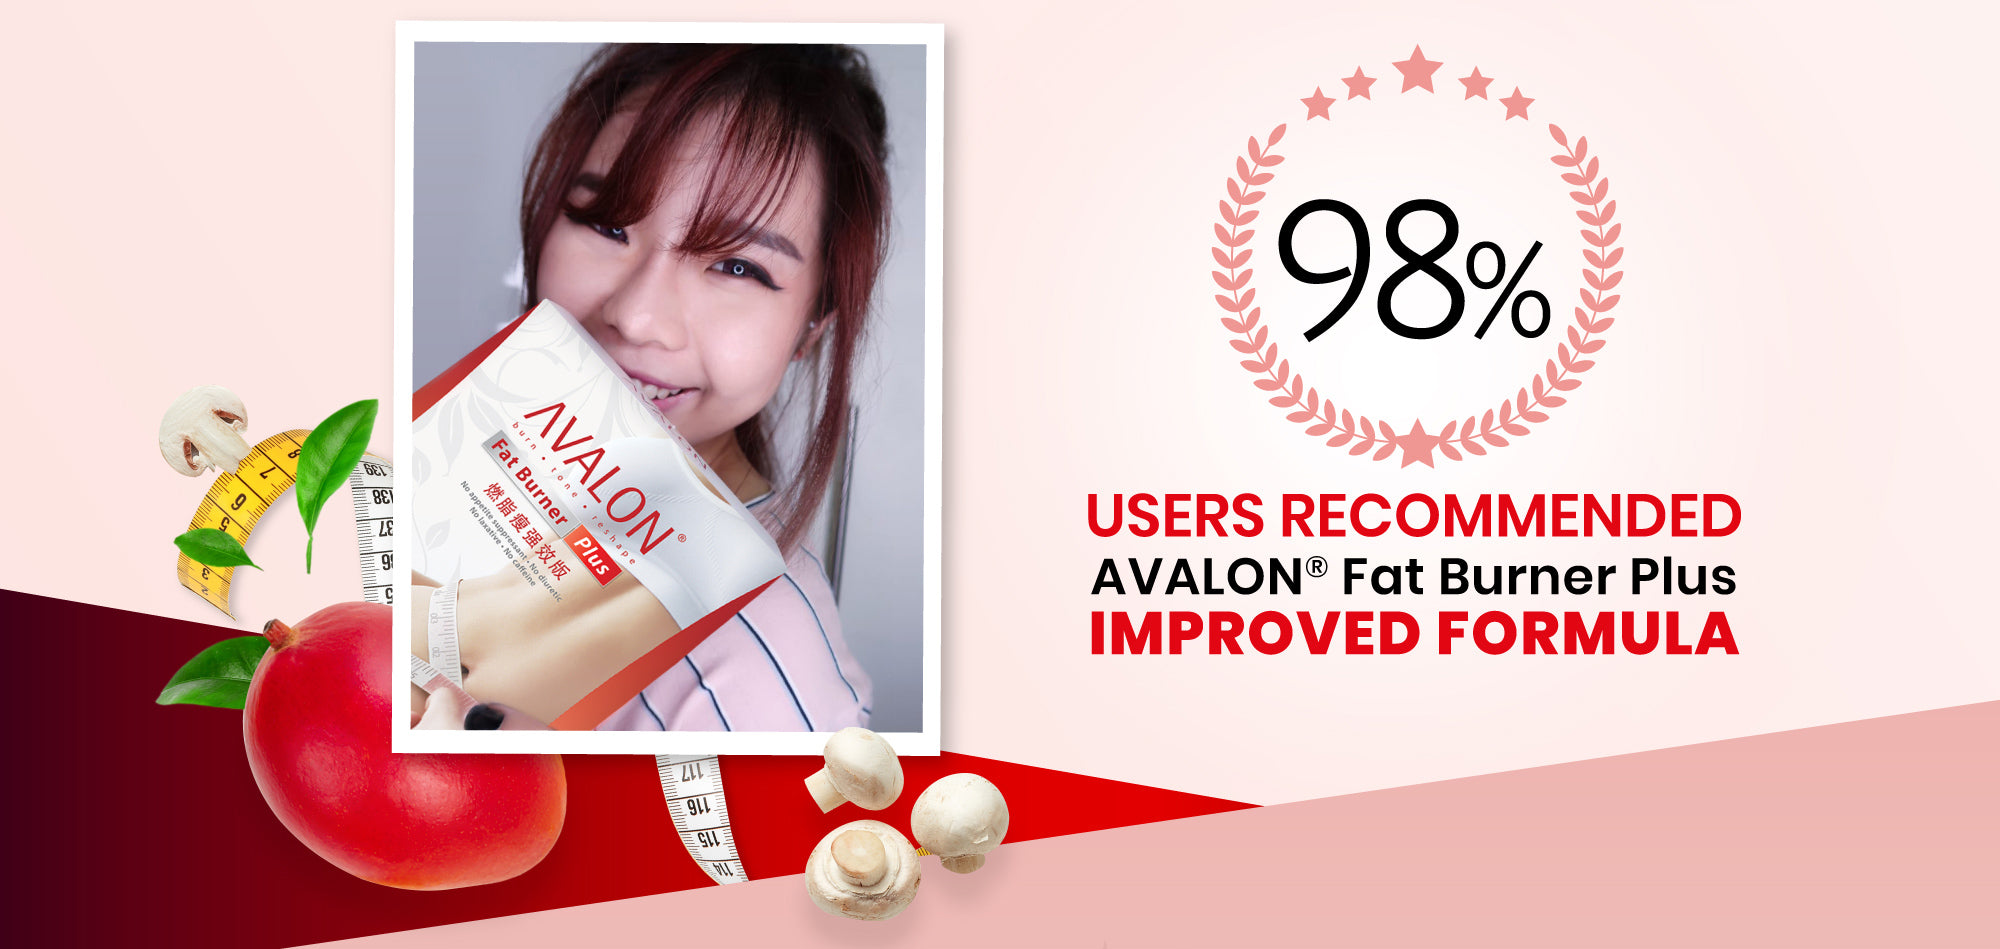 98% of our users have recommended AVALON® Fat Burner Plus Improved Formula.